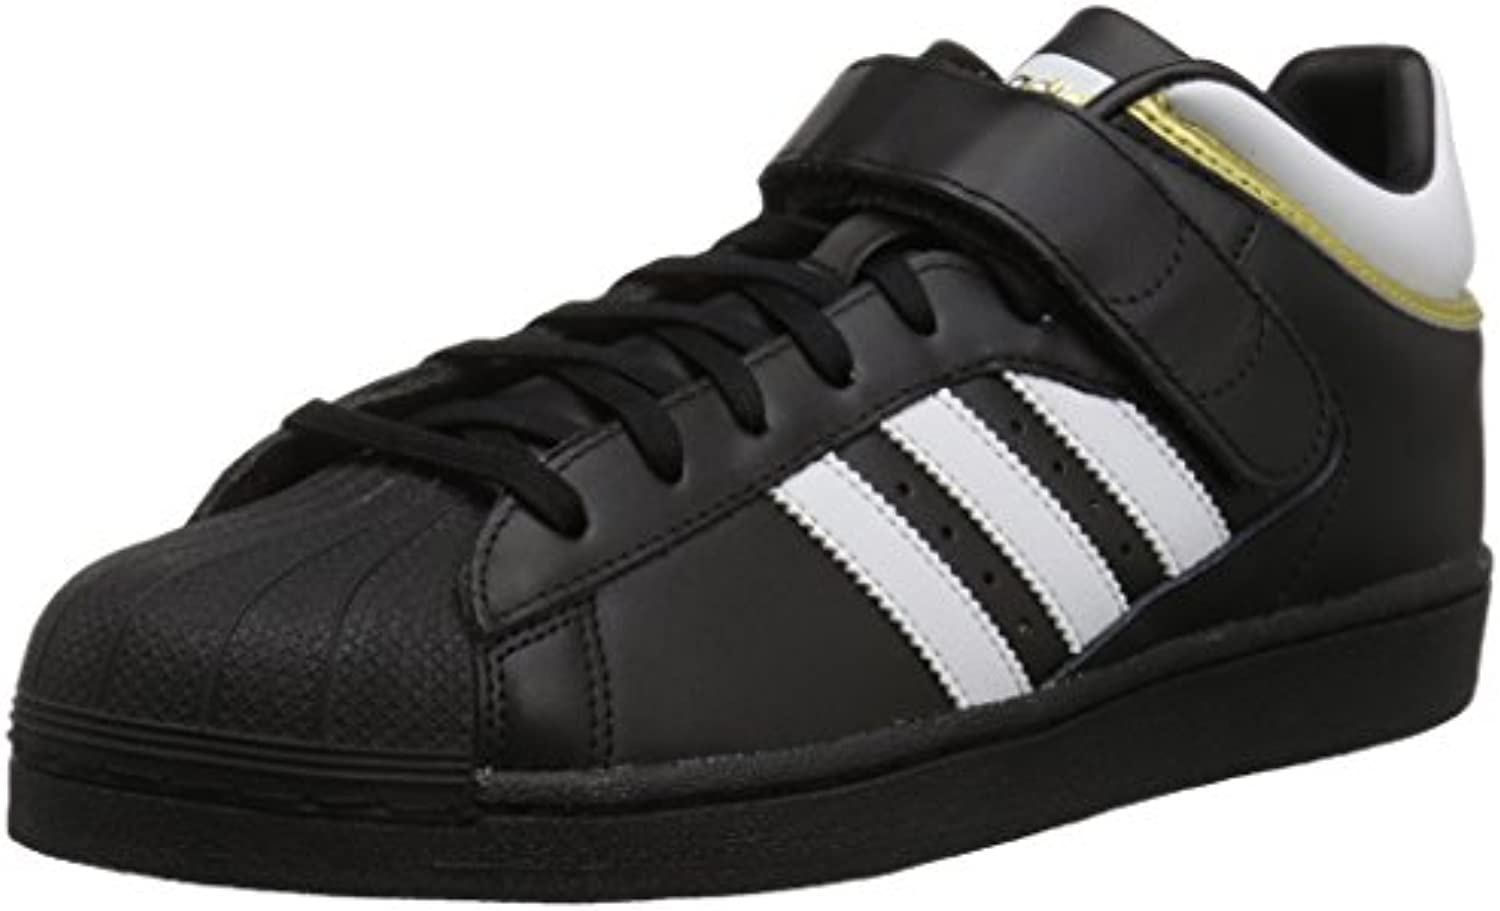 noir les shell originals pro or 7 blanc baskets adidas nYnTz